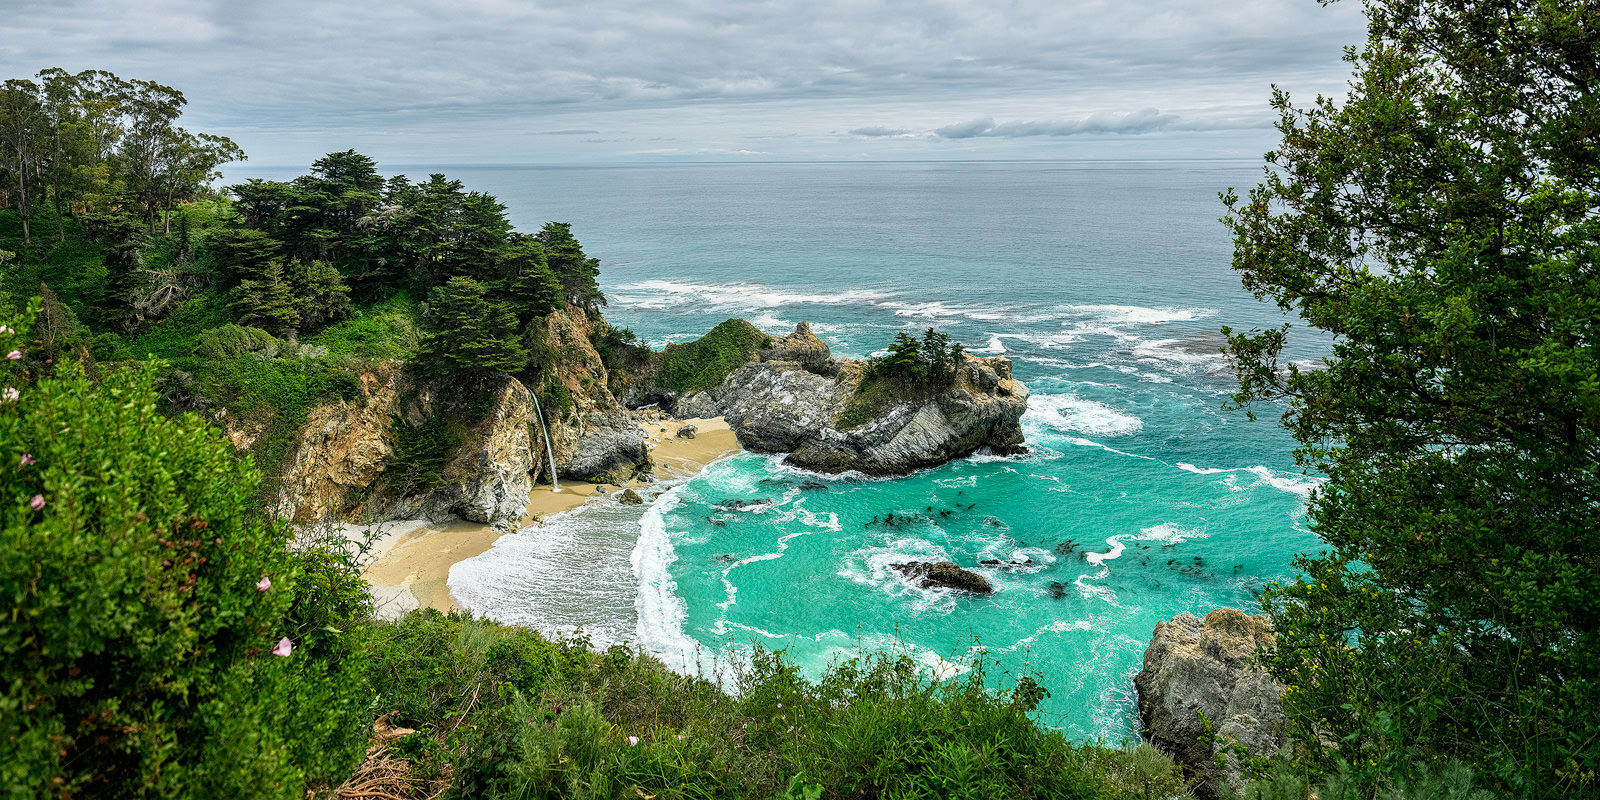 Neverland, McWay Falls, waterfall, coast, Big Sur, Central, California, McWay Creek,  Julia Pfeiffer Burns State Park, Carmel, Pacific, Ocean, tidefall, ocean, coastline, beautiful, famous, , photo